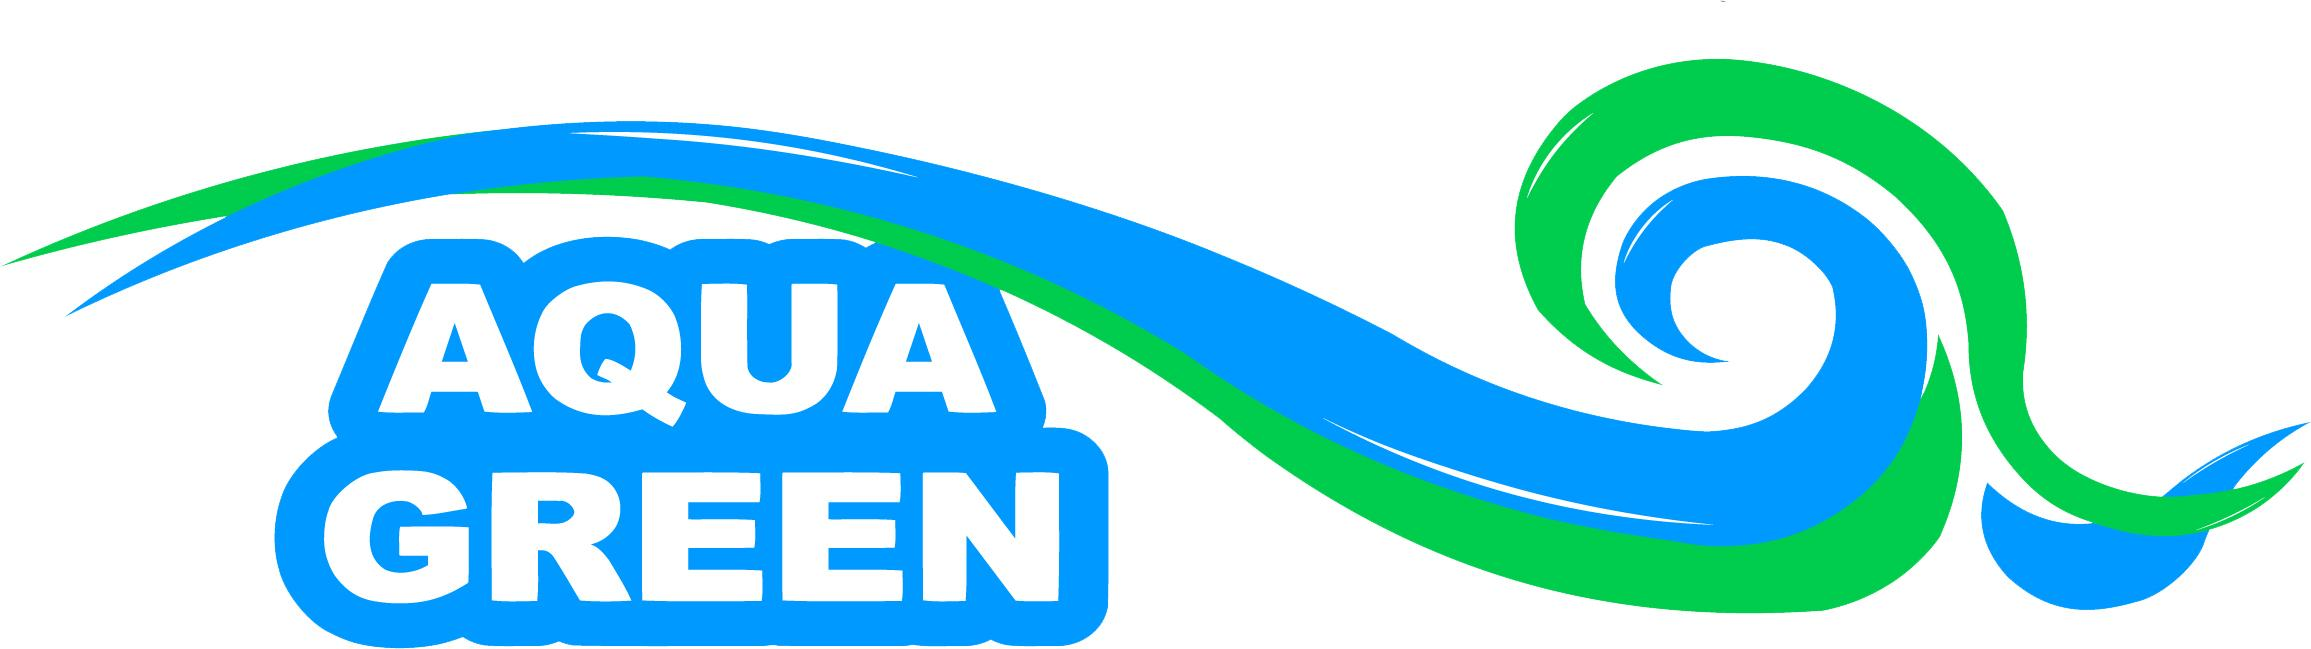 aquagreen logo_3